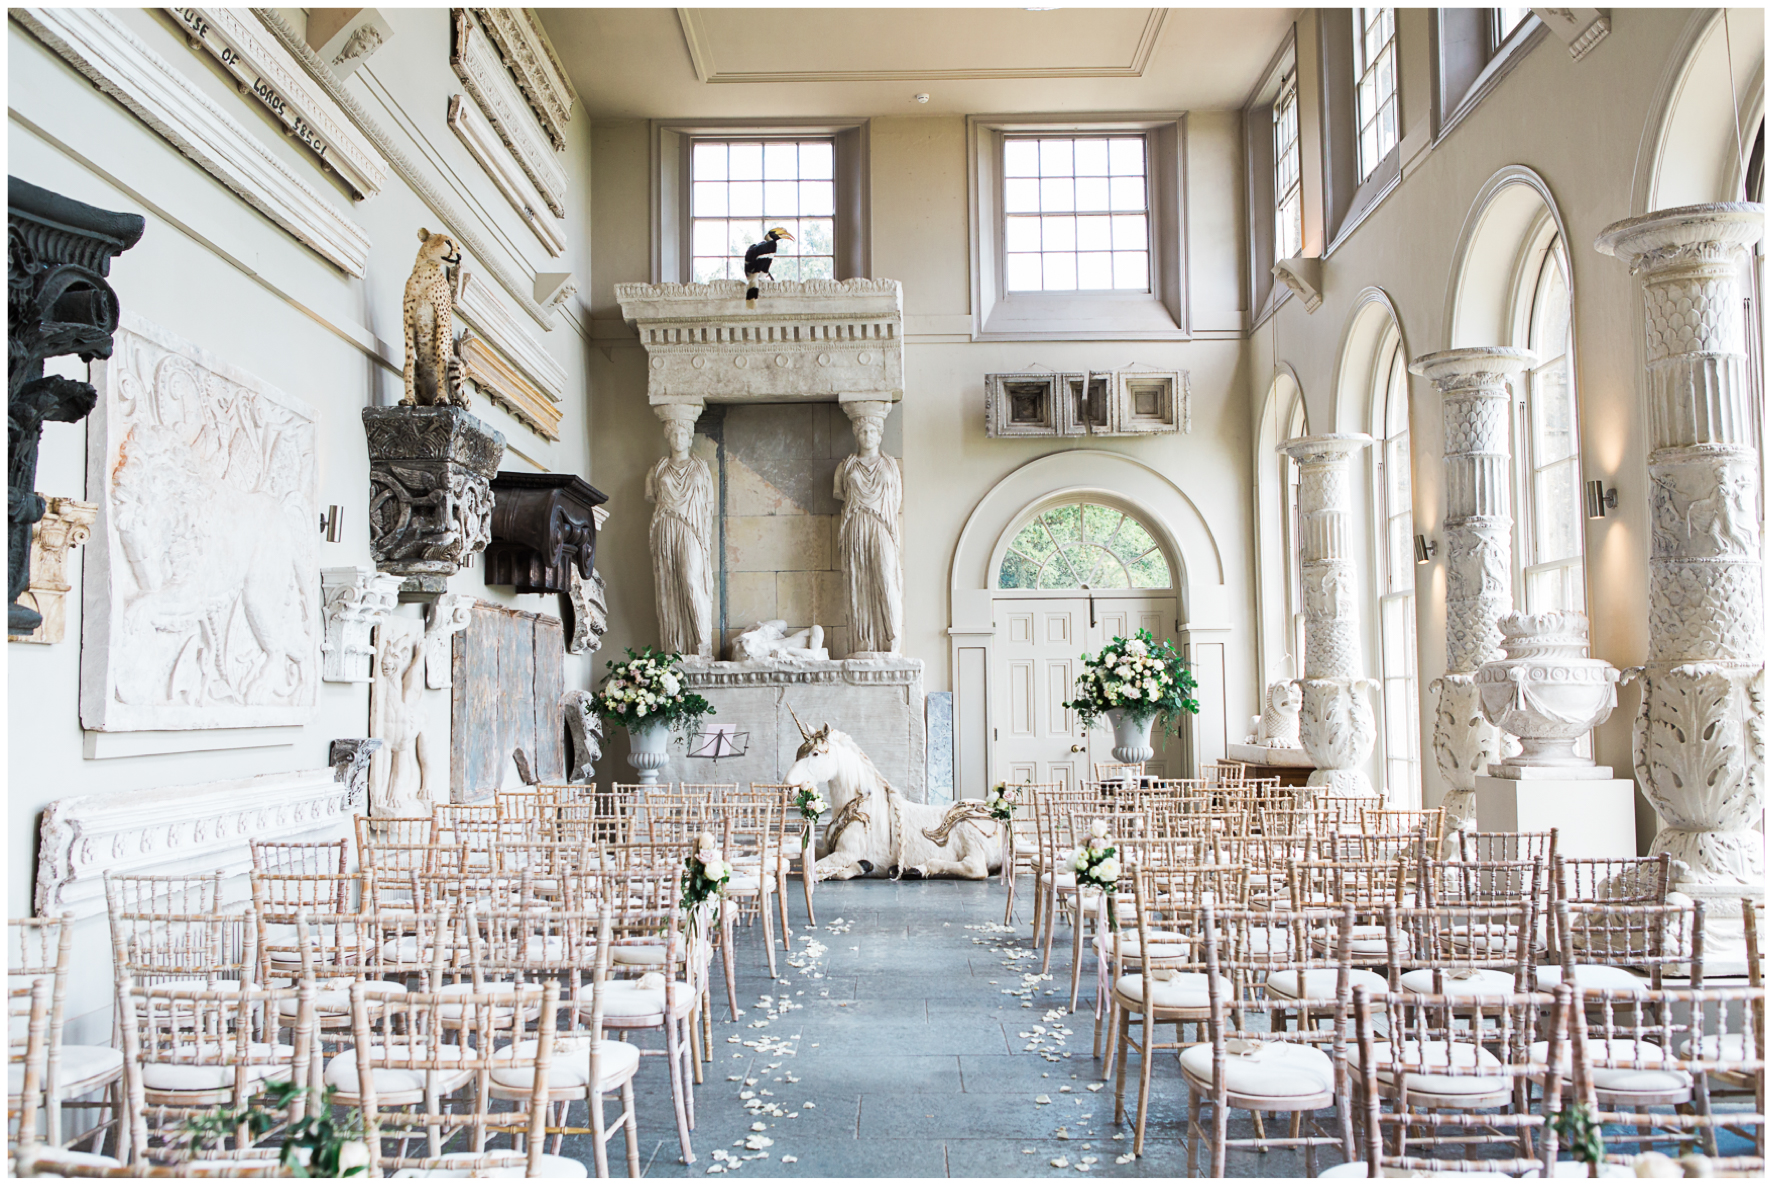 Aynhoe Park orangery, wedding ceremony